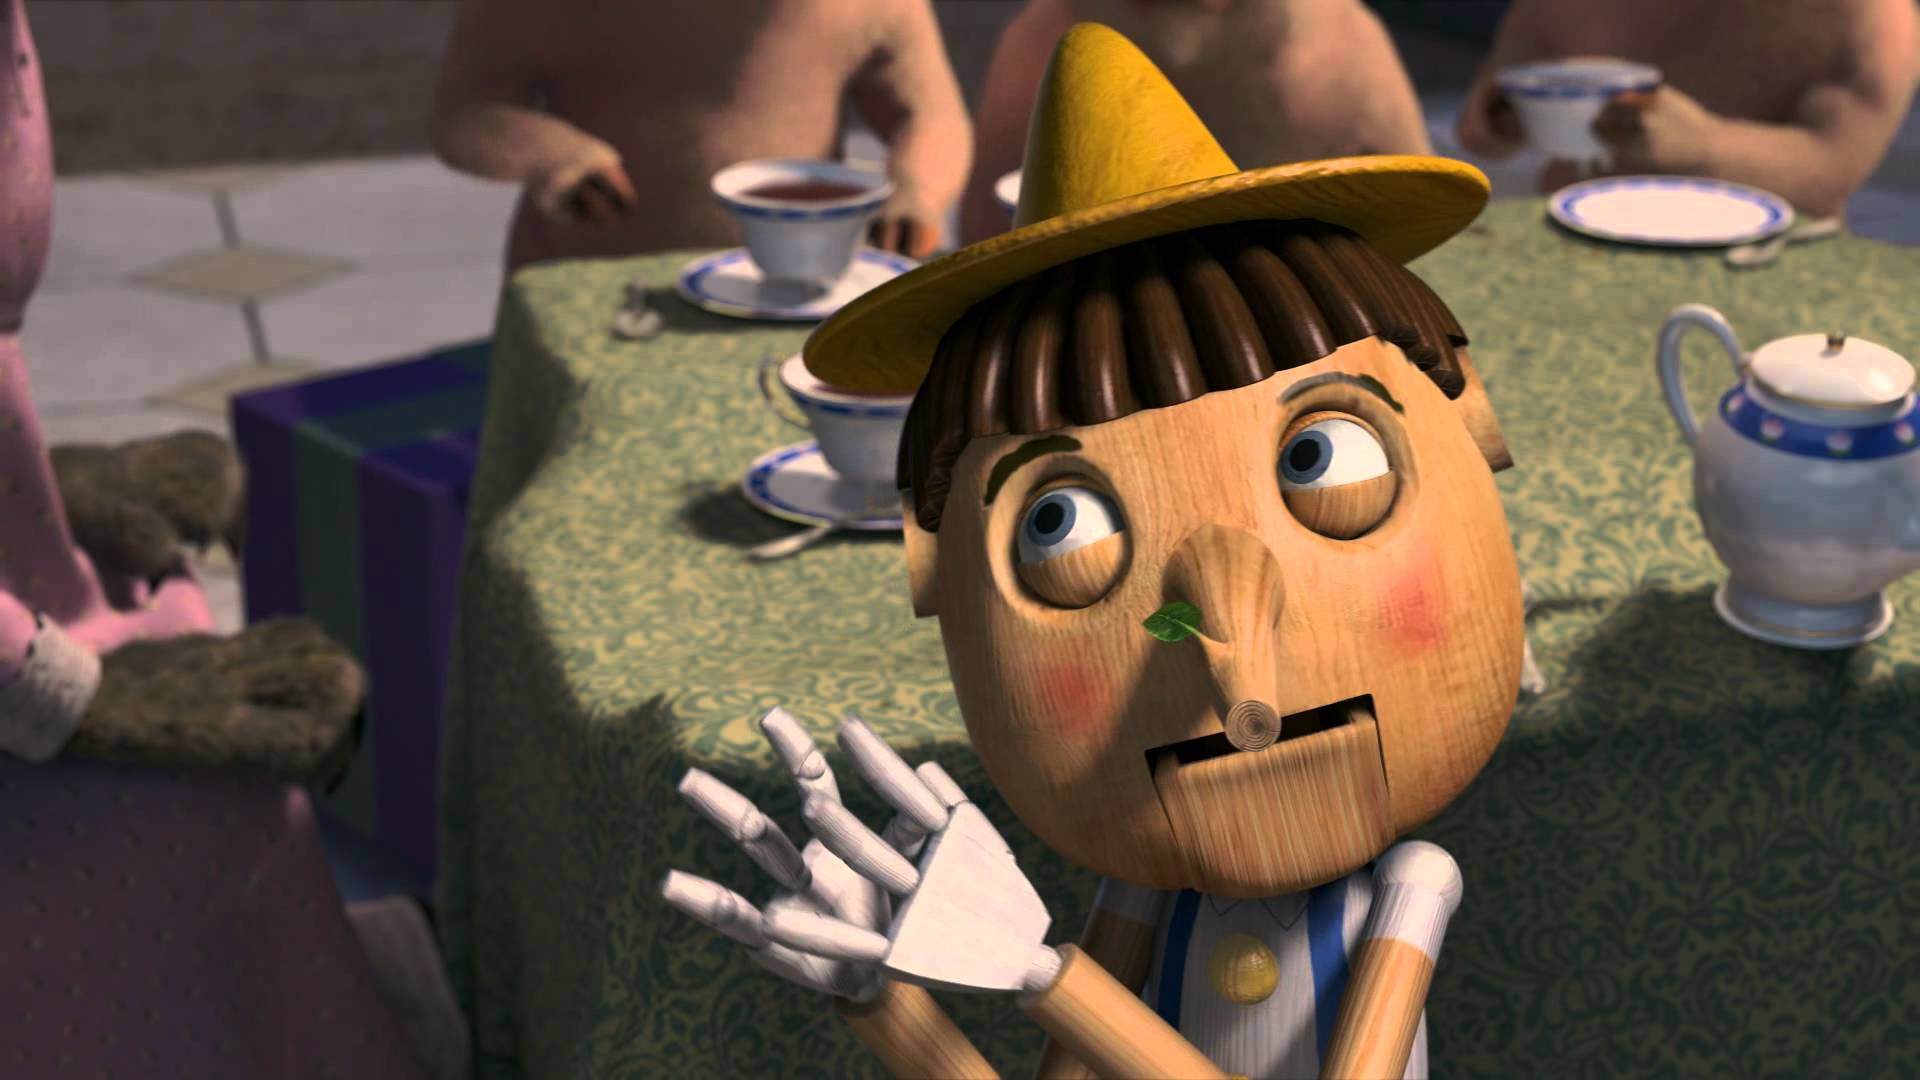 Chris Miller, Raman Hui, Shrek the Third, 2007 – Pinocchio